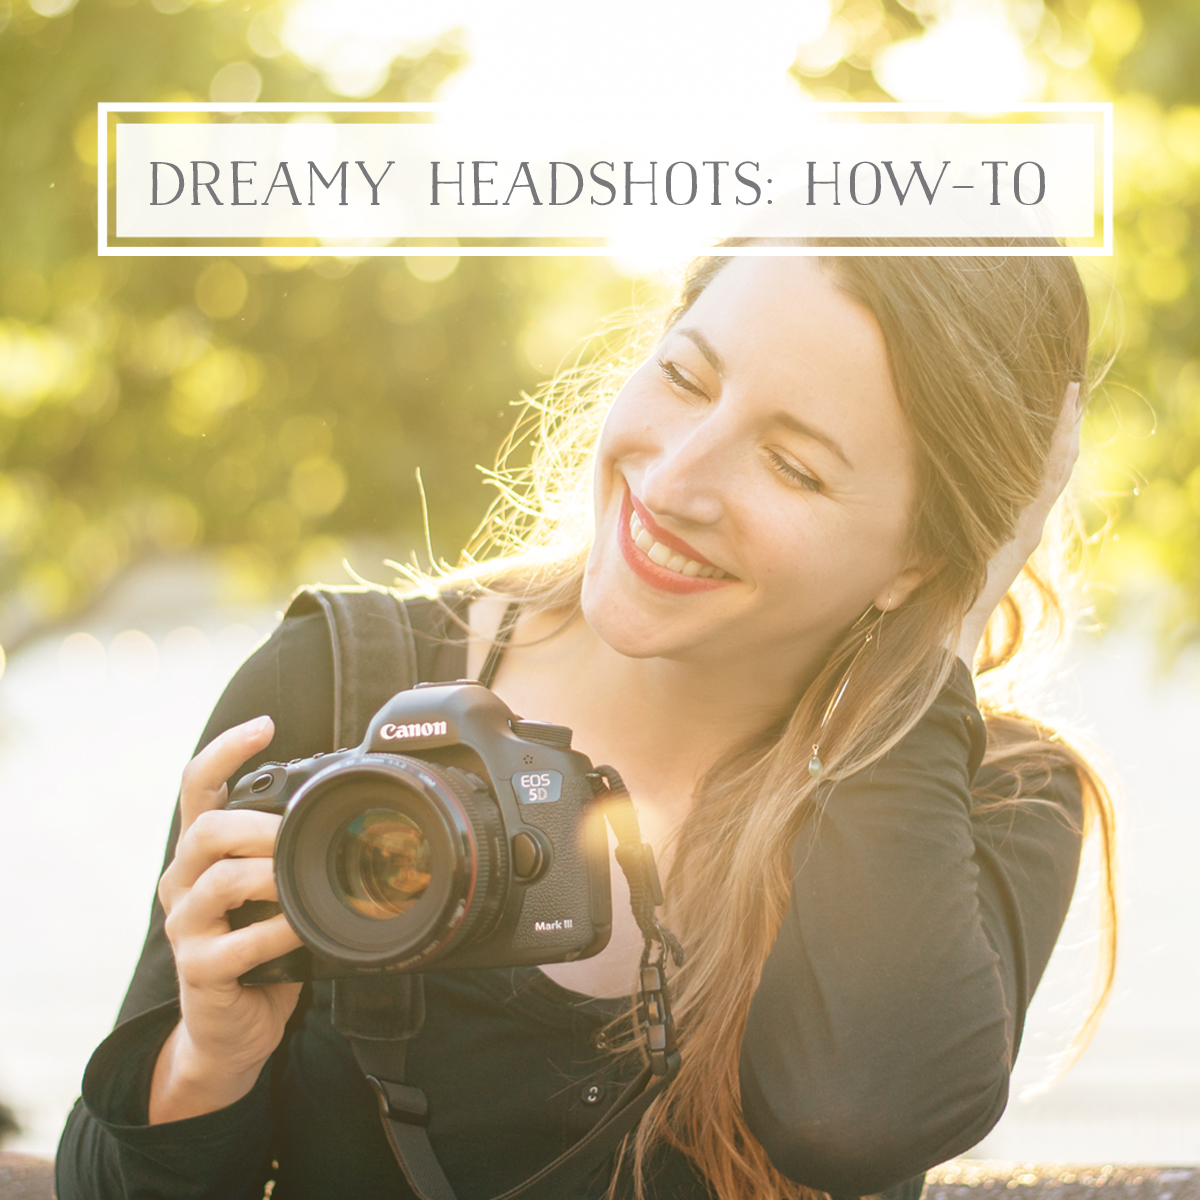 Dreamy Headshots: How-To